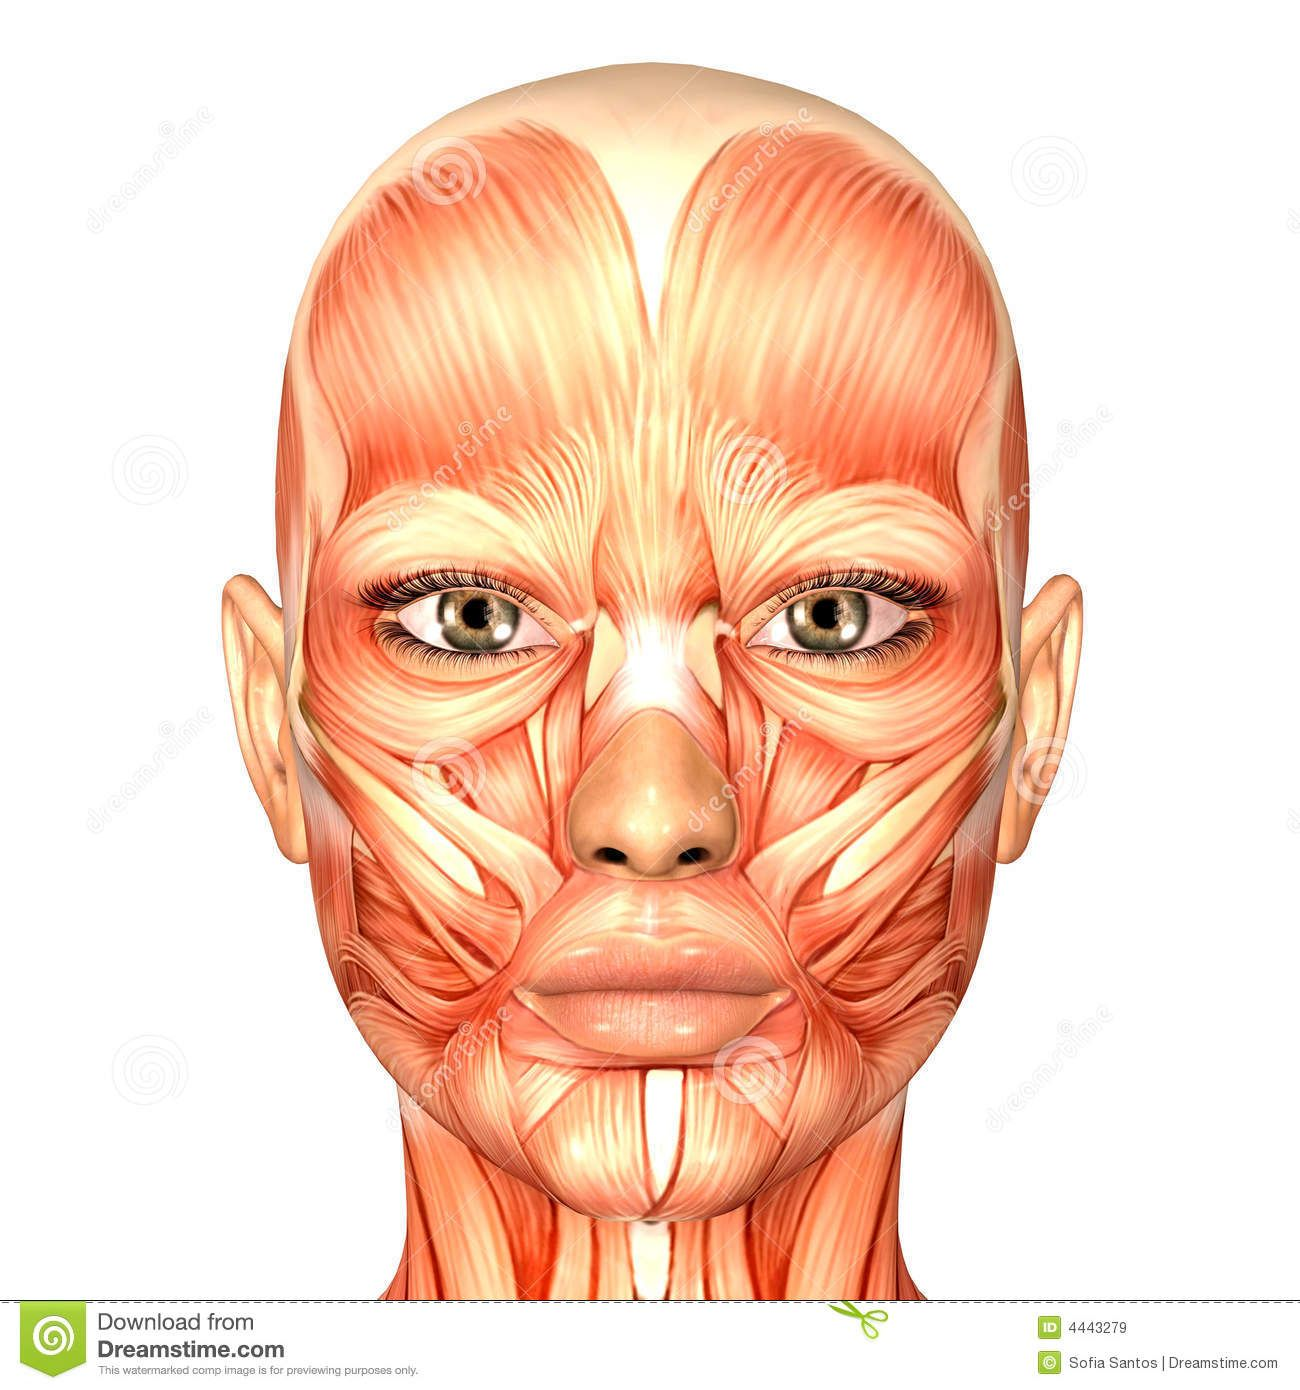 Anatomy face royalty free stock images human anatomy face anatomy face royalty free stock images human anatomy face pooptronica Image collections